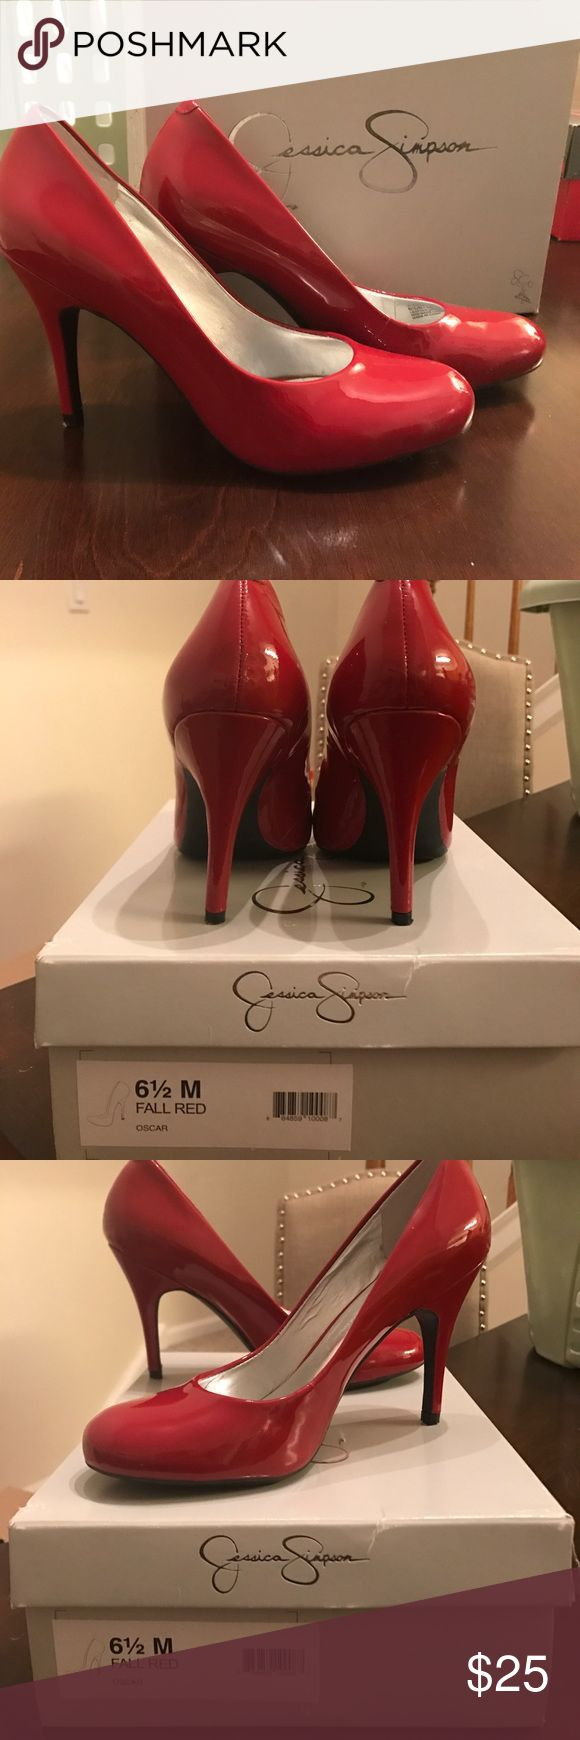 Jessica Simpson Red Pumps Like new worn once Jessica Simpson Shoes Heels